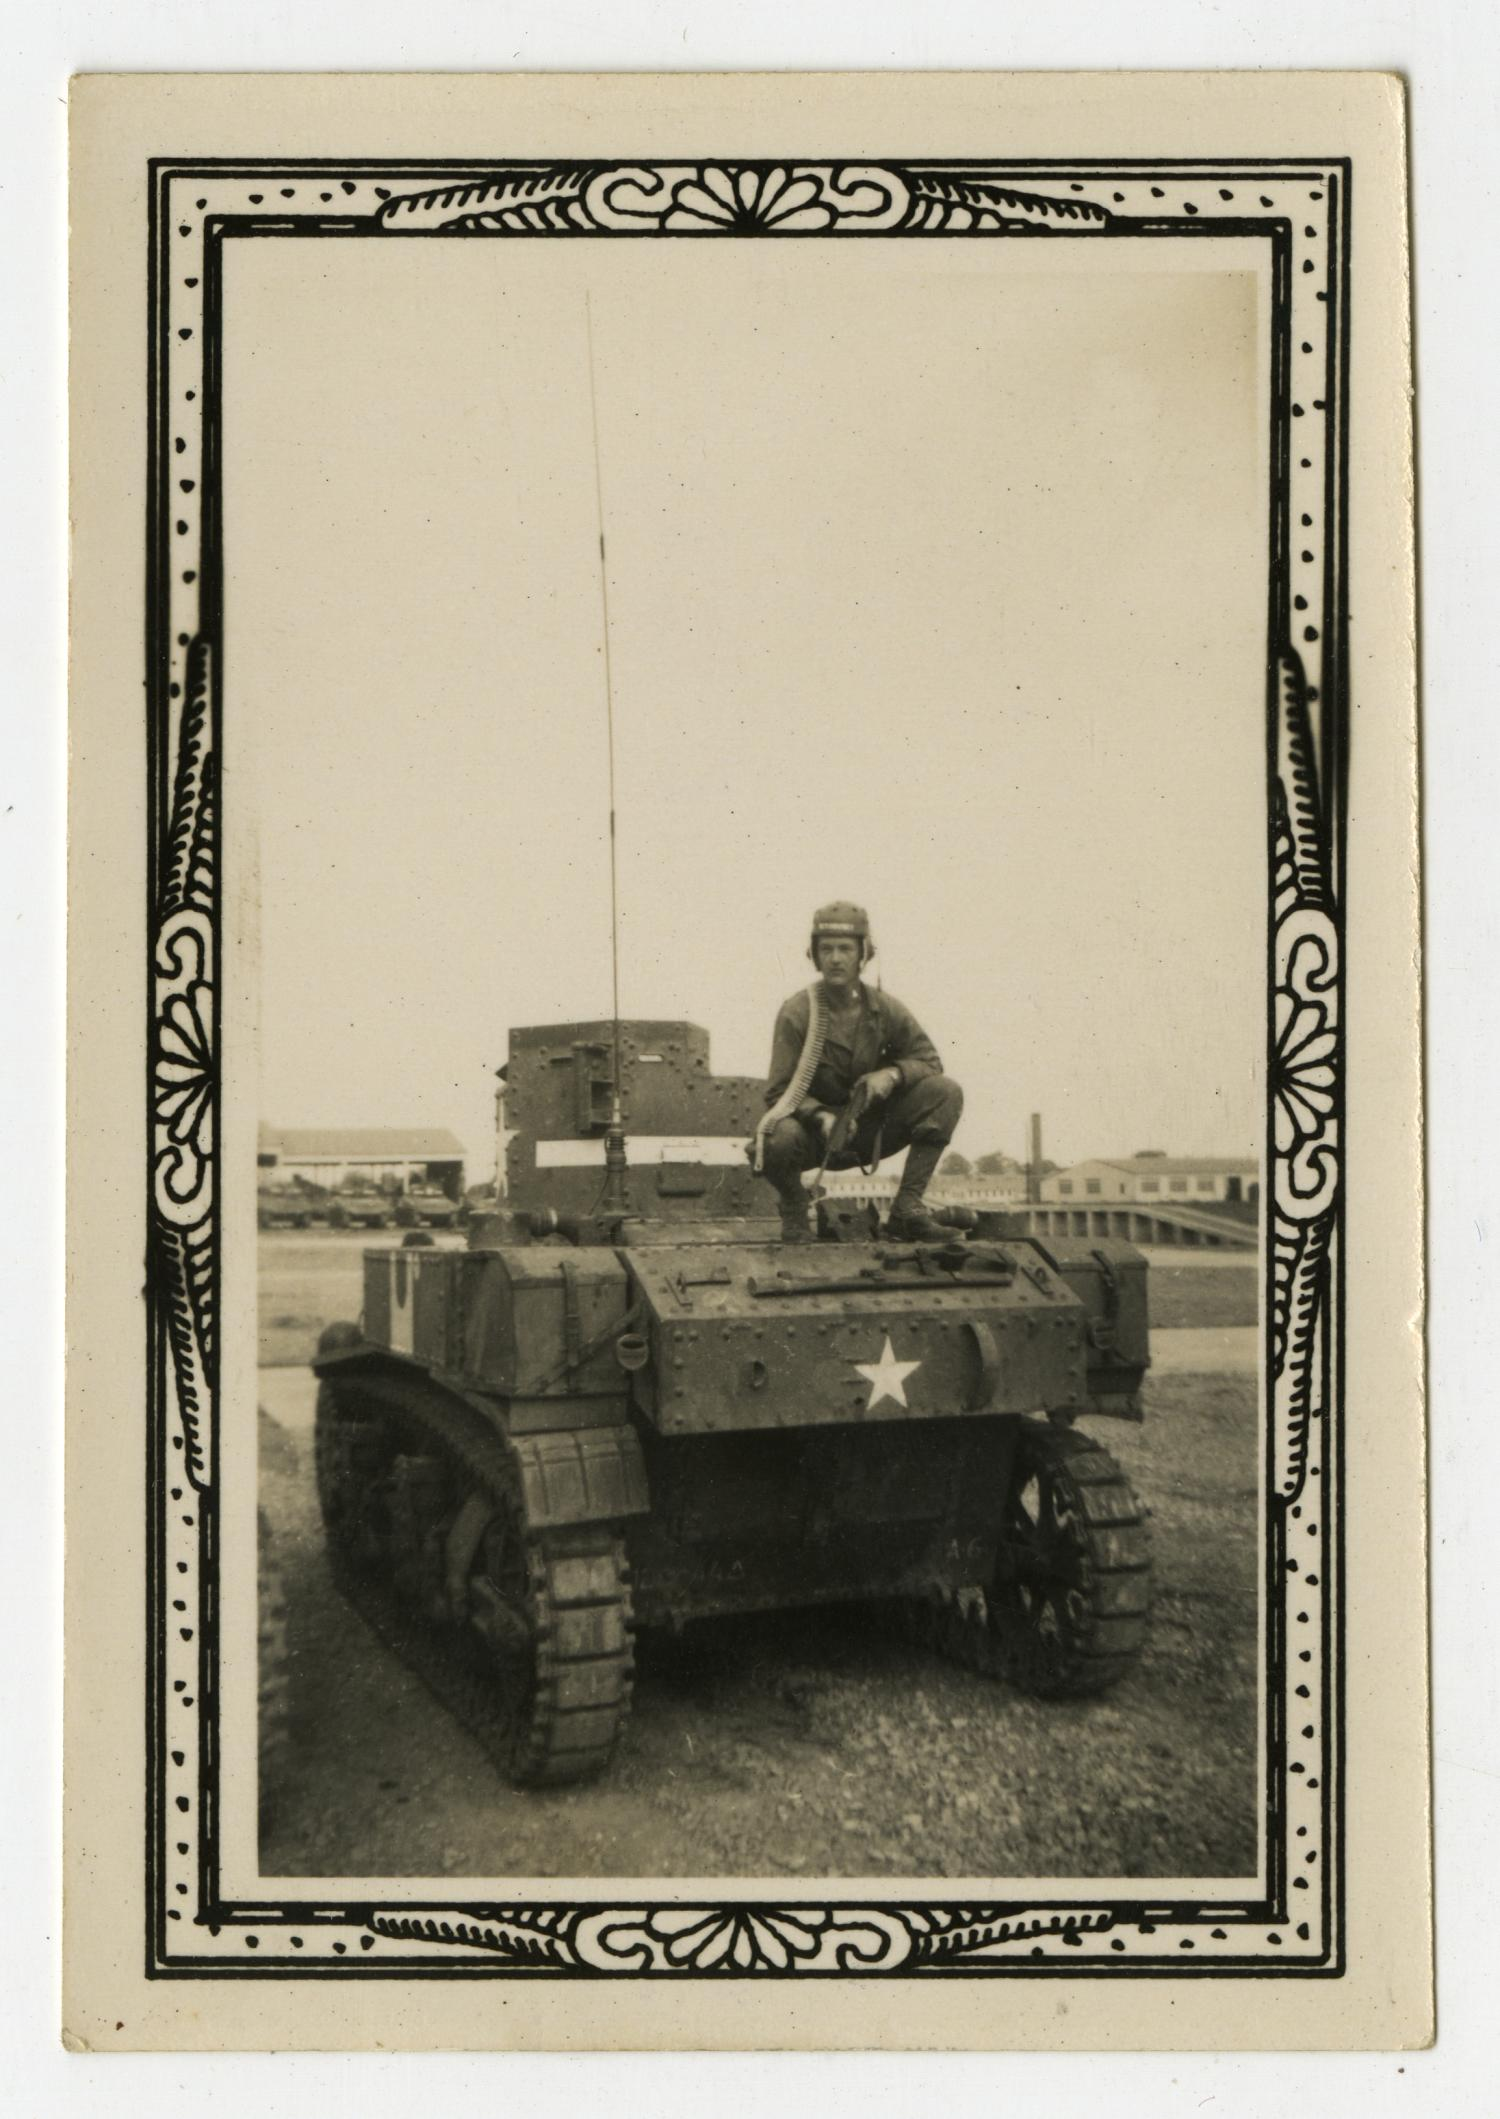 [Man On Tank With Rifle]                                                                                                      [Sequence #]: 1 of 2